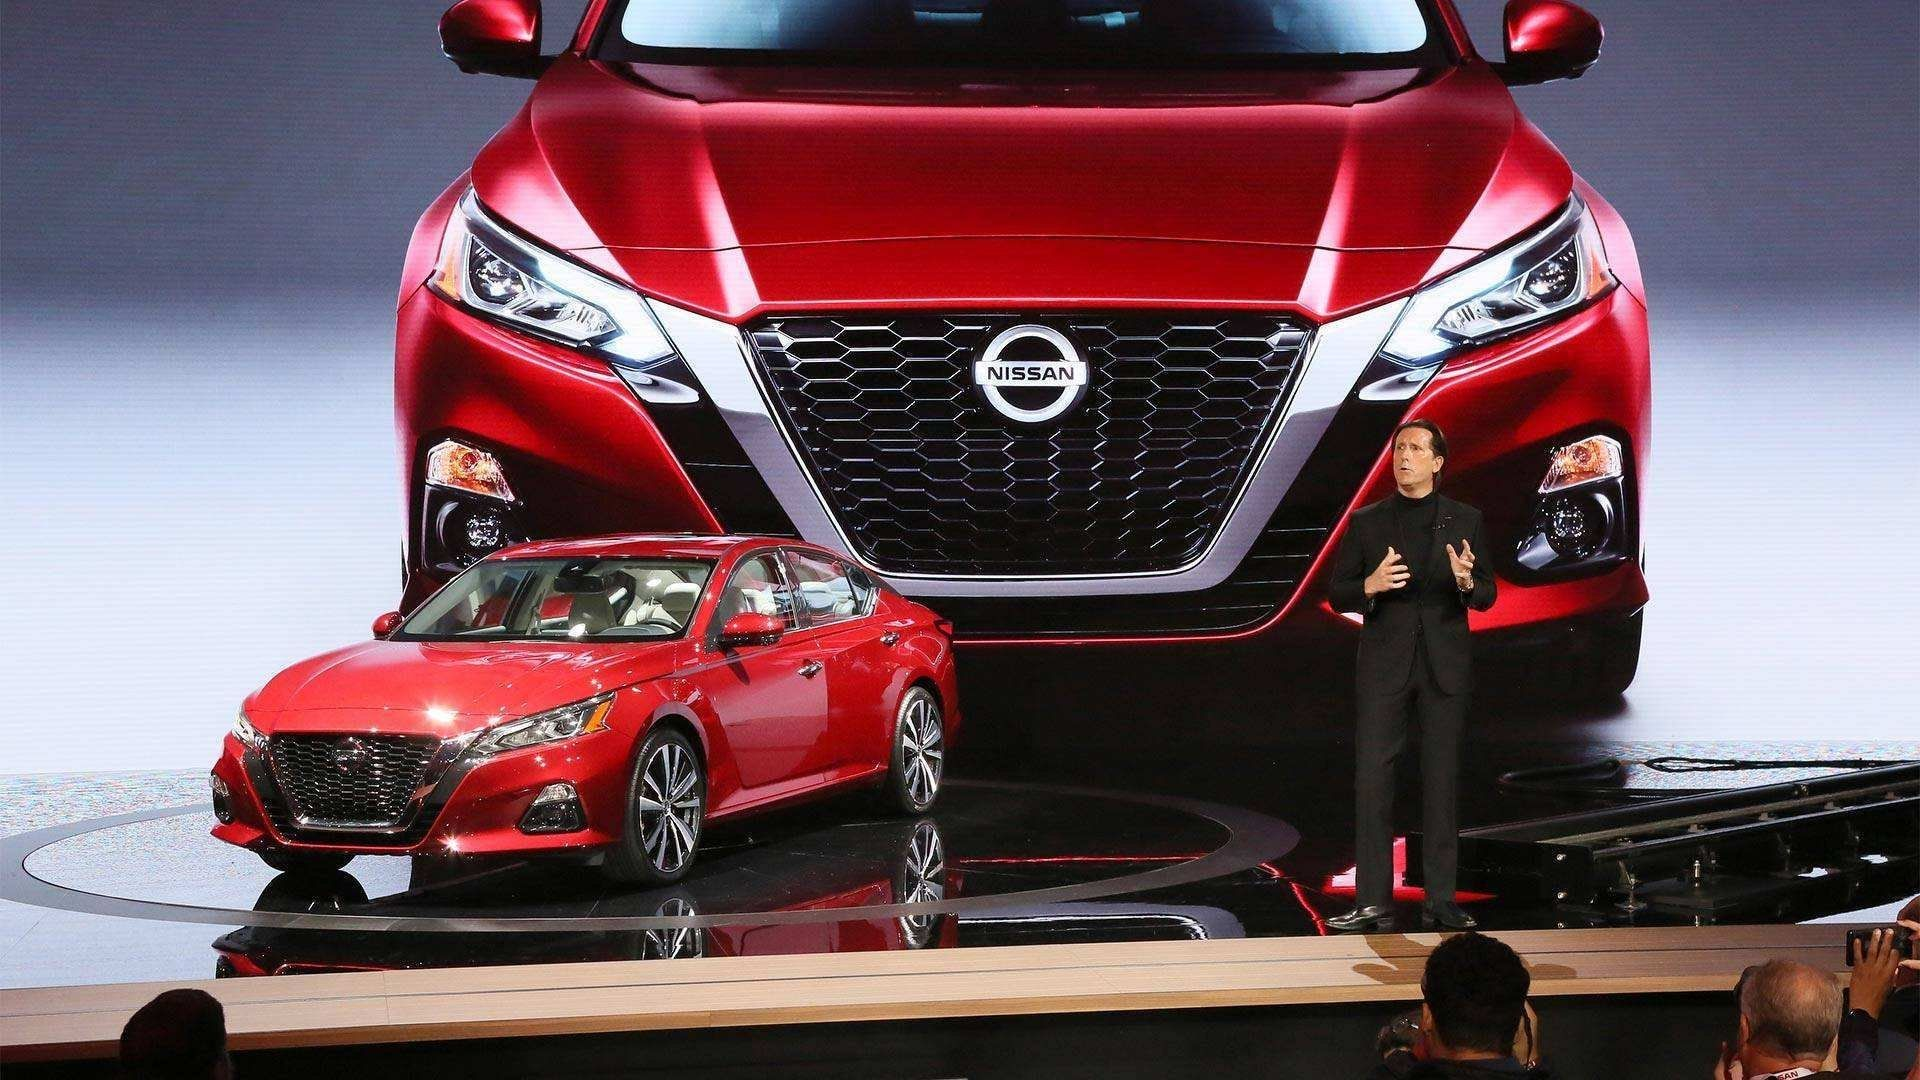 Best Nissan Sentra 2020 Price and Review Nissan sentra